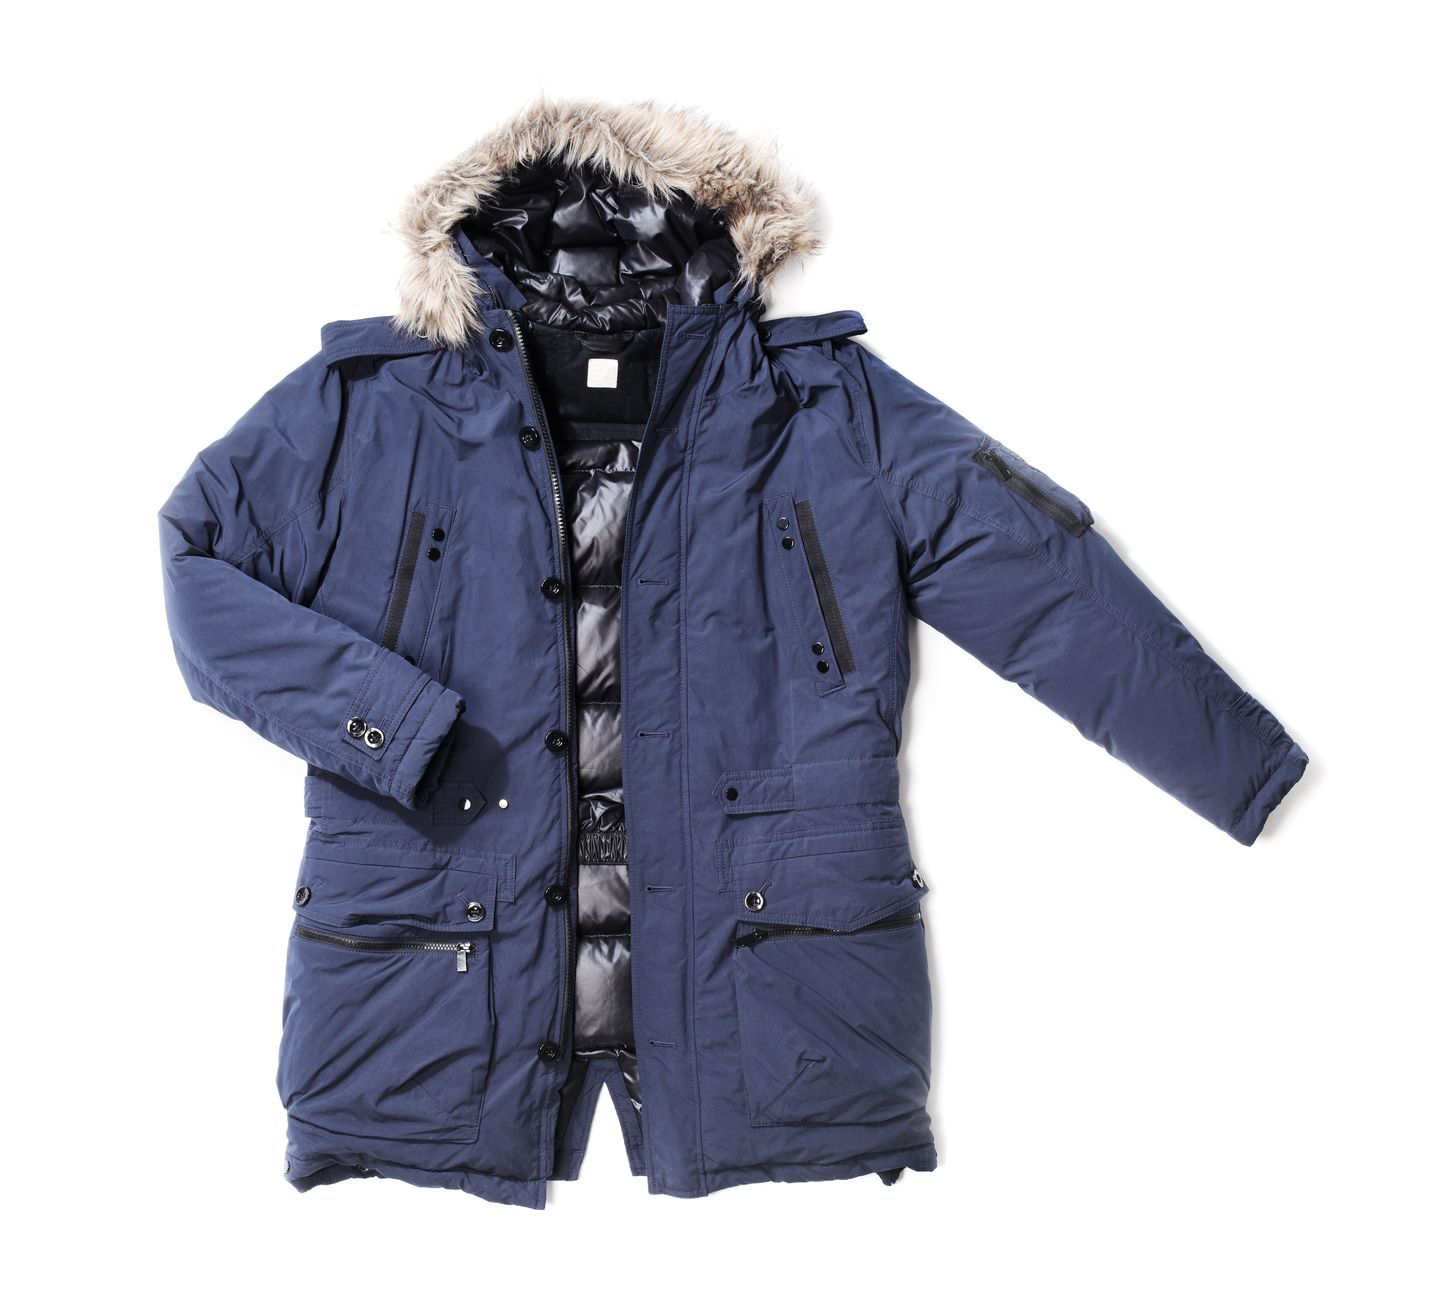 938491888efdc Parkas And Recreation « Weekly Gravy